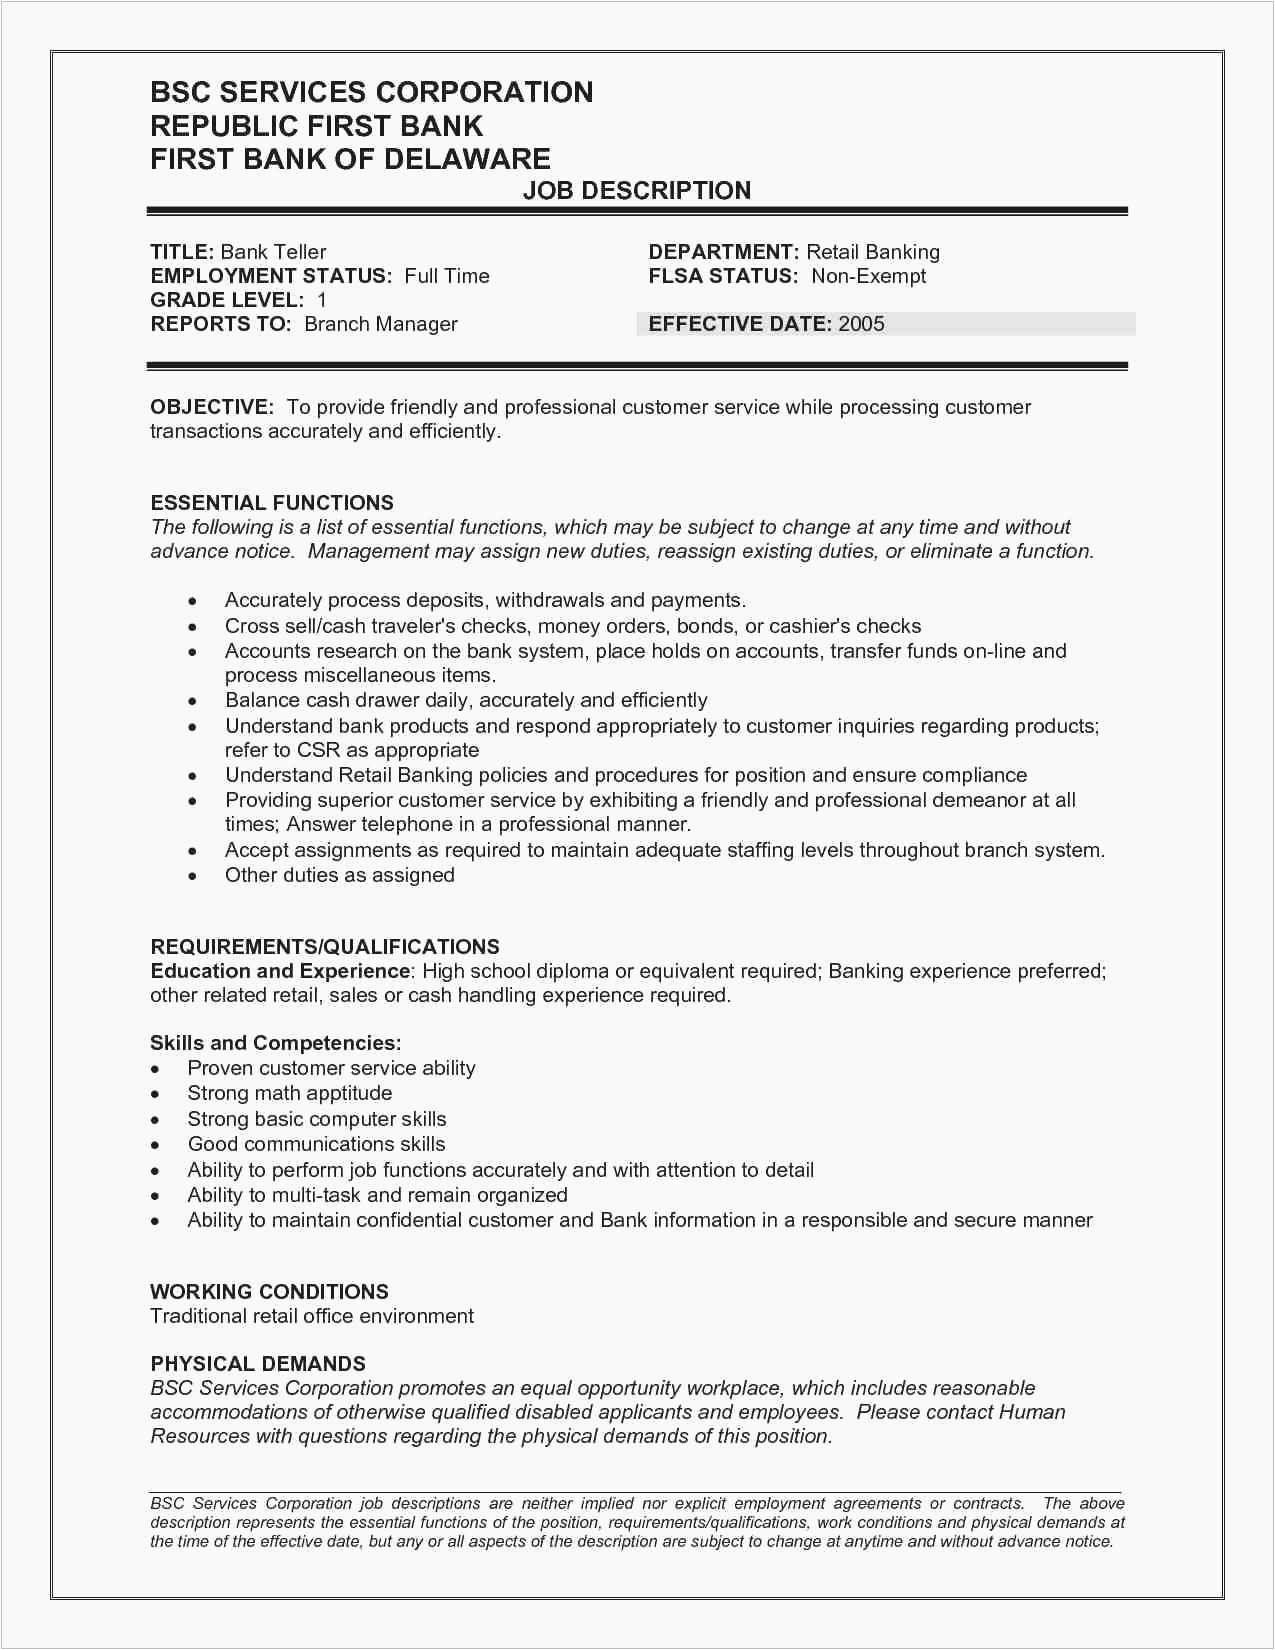 Time Management Skills Resume Unique 23 Inspirational Pics Customer Service Resumes Examples Bank Teller Resume Resume No Experience Resume Examples